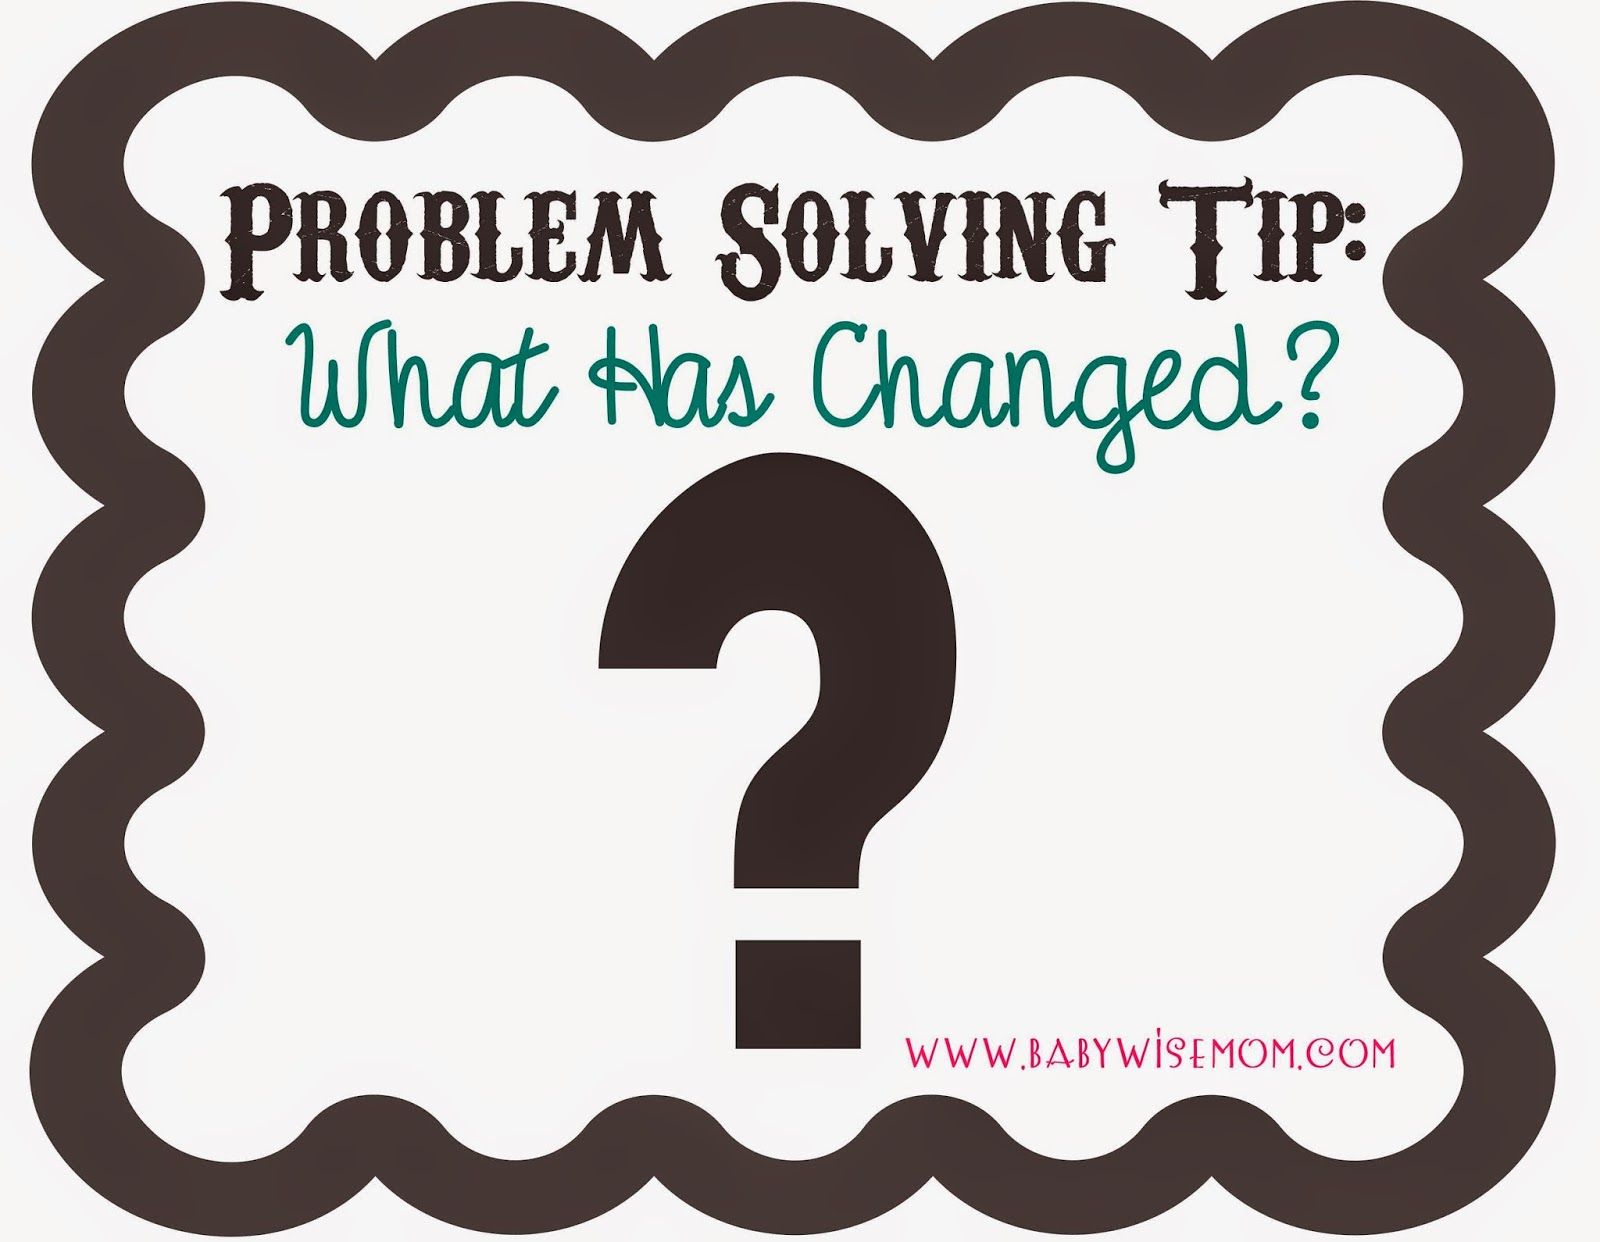 Problem Solving Tip: What Has Changed?